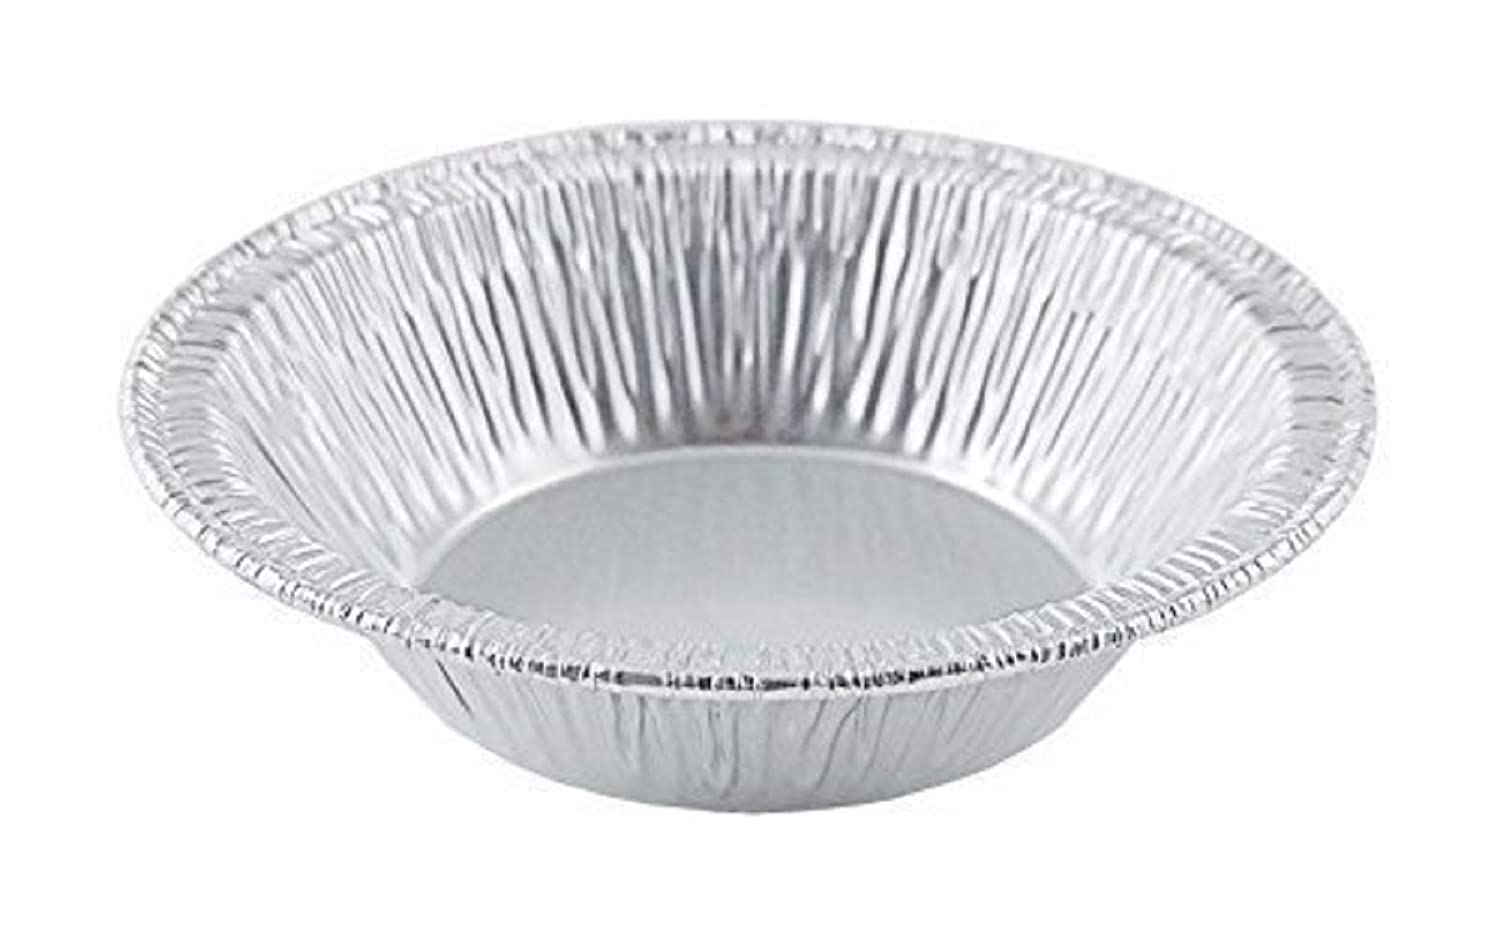 "Aluminum Foil Disposable Baking Tart pans - 3 3/8"" Pie Tins Mini Pie pans for Hot and Cold Foods Made in USA (Pack of 100)"